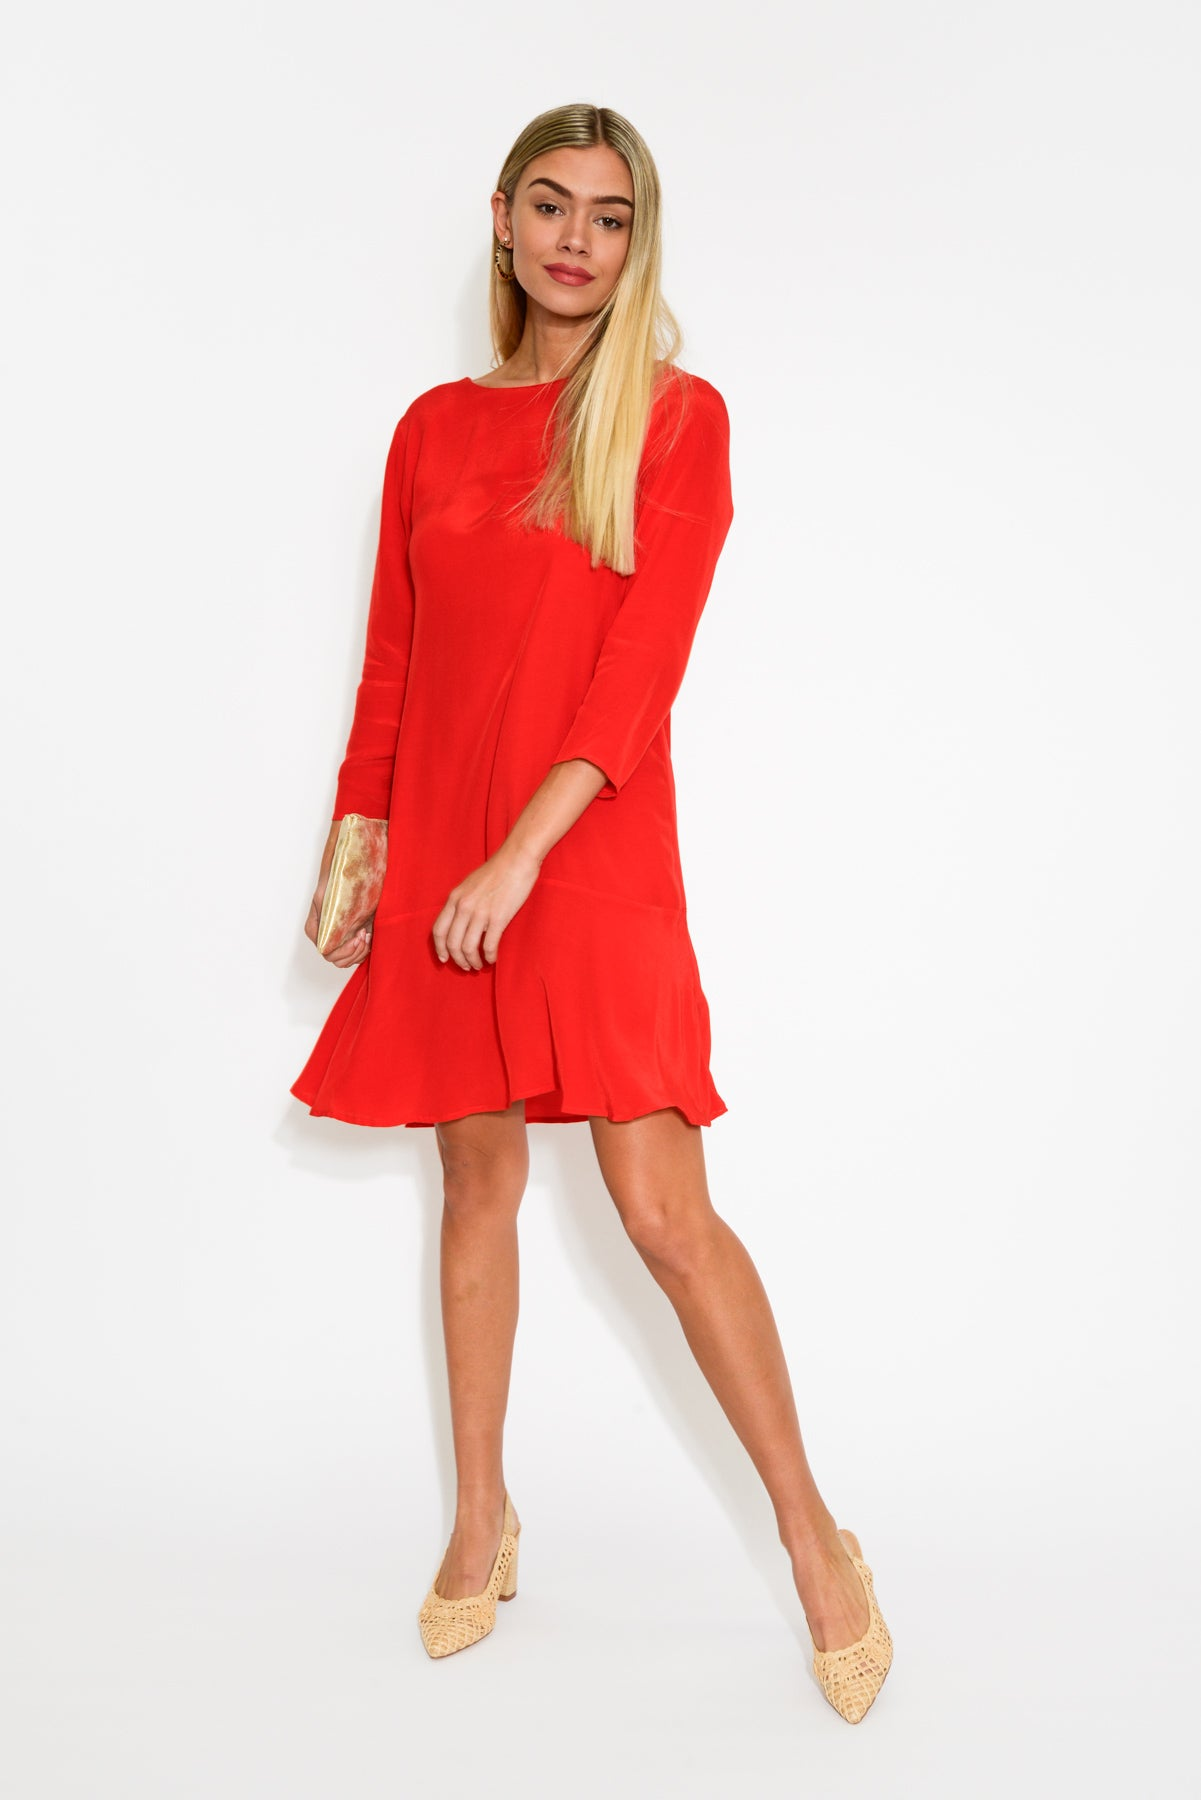 Scarlet Red Flounce Dress - Blue Bungalow